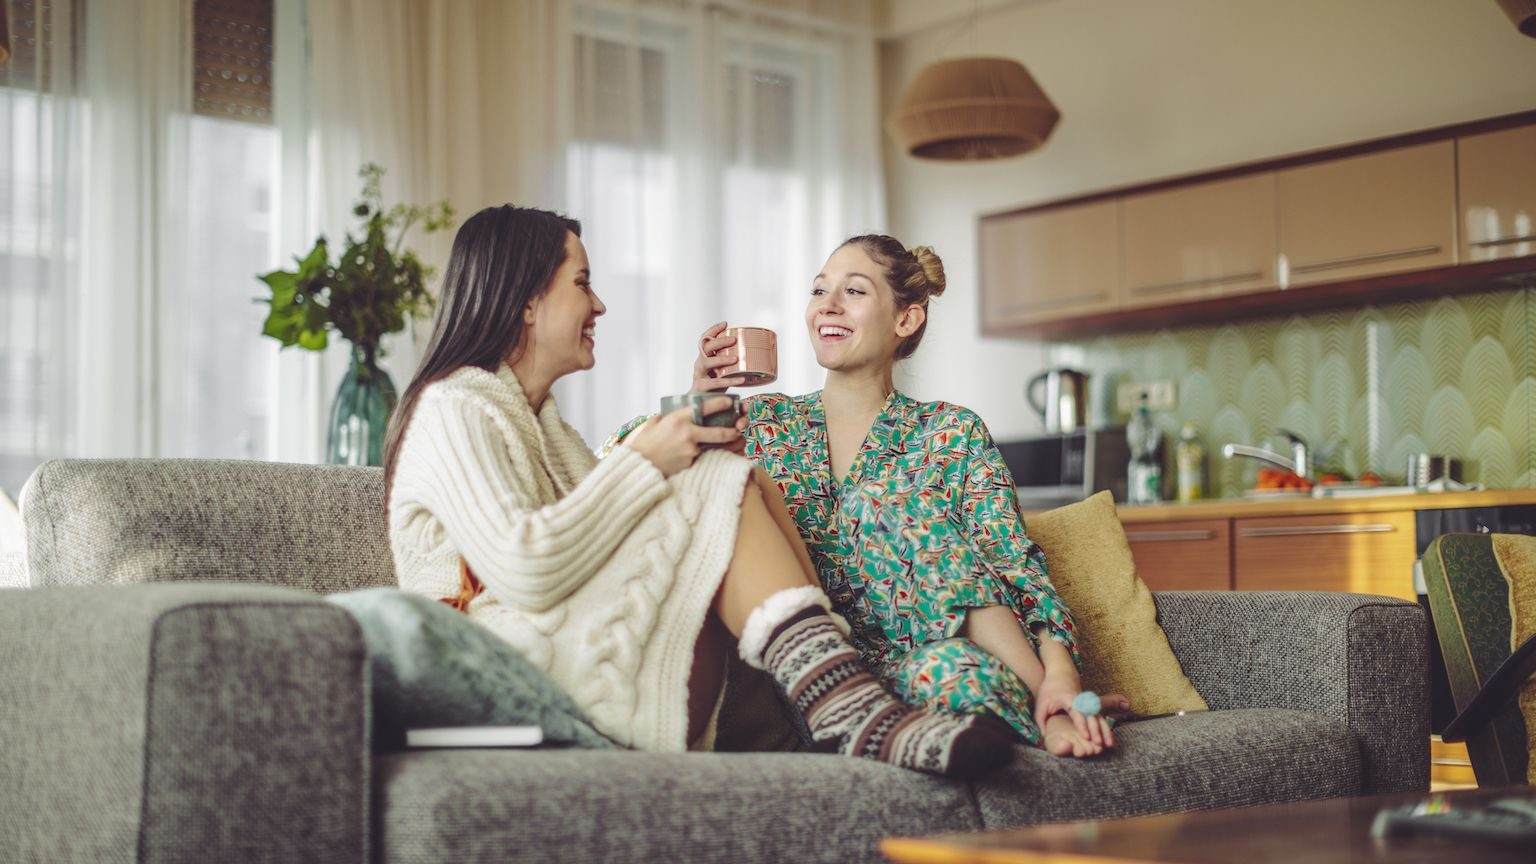 Two women sitting on a couch in warm clothing drinking coffee